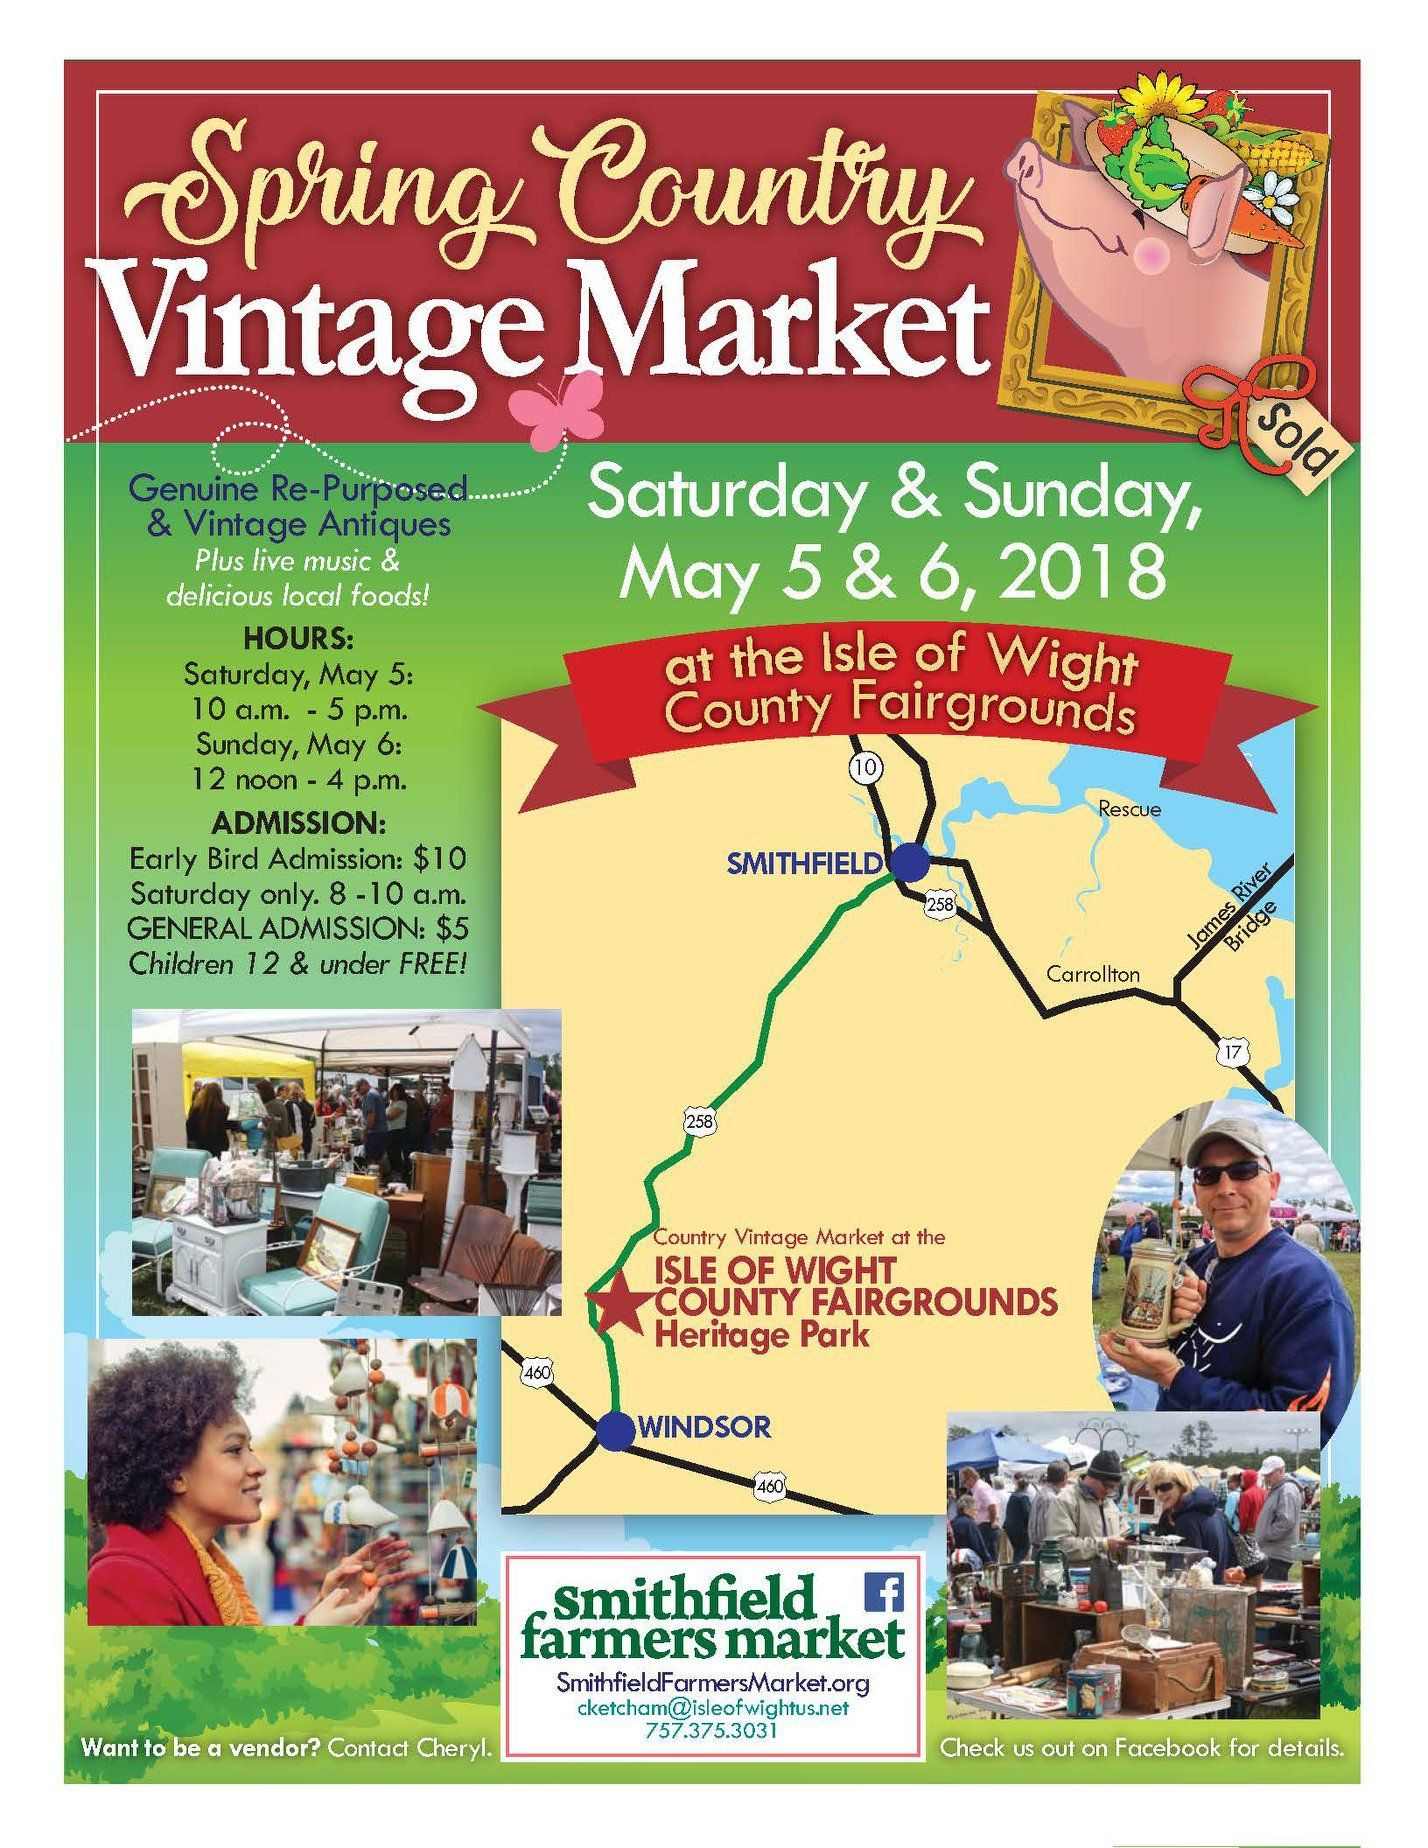 Spring Country Vintage Market is this weekend in